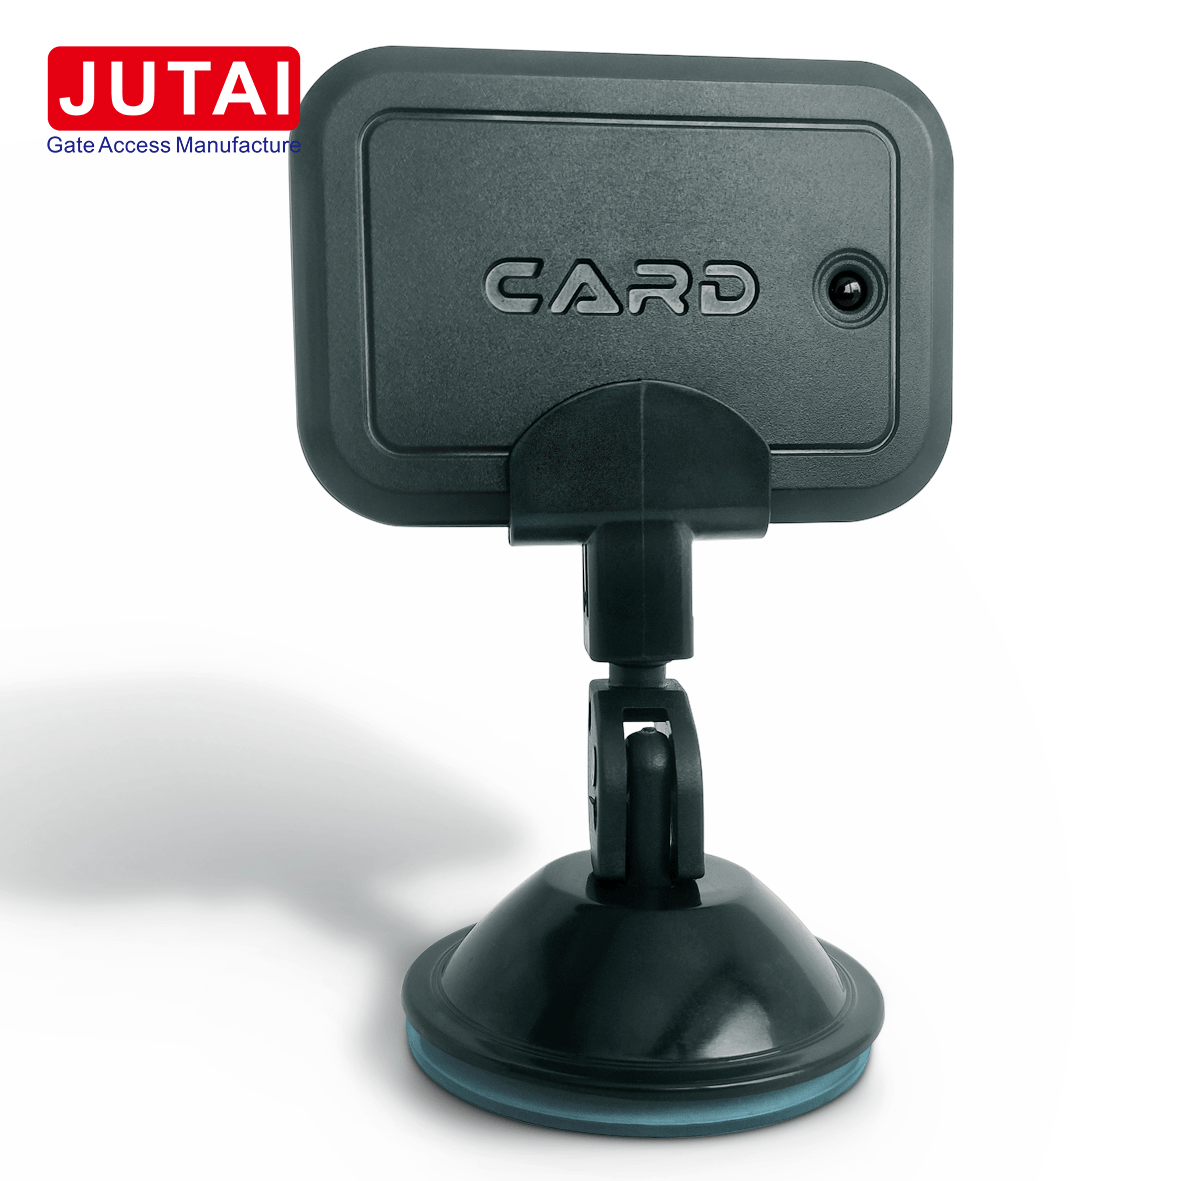 JUTAI parking lange afstand Bluetooth-lezer en Bluetooth-kaart